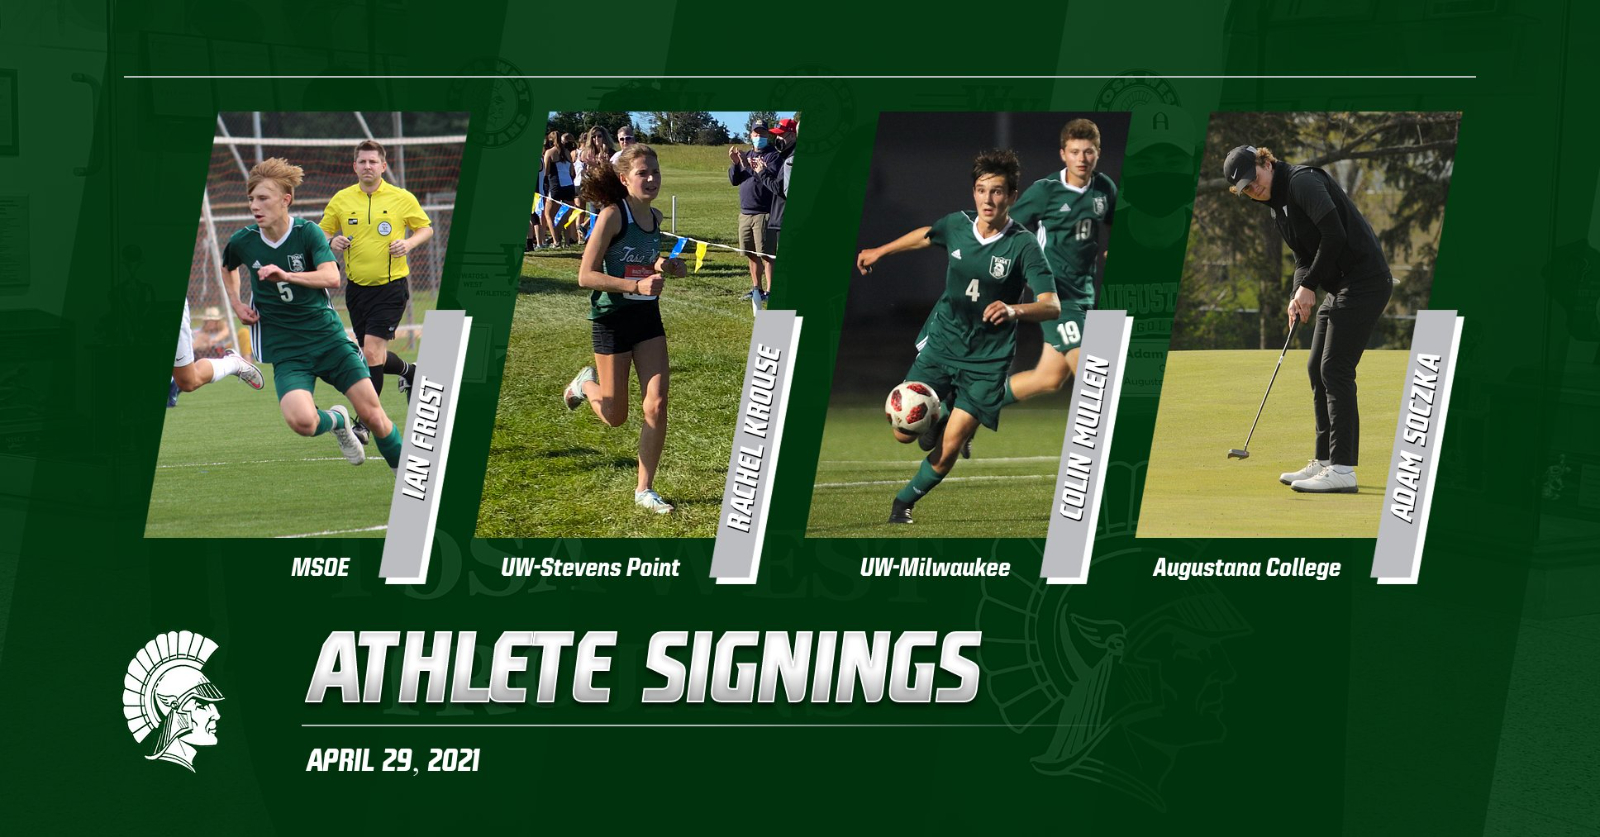 4/29/21 Athlete Signings – I. Frost, R. Krouse, C. Mullen & A. Soczka